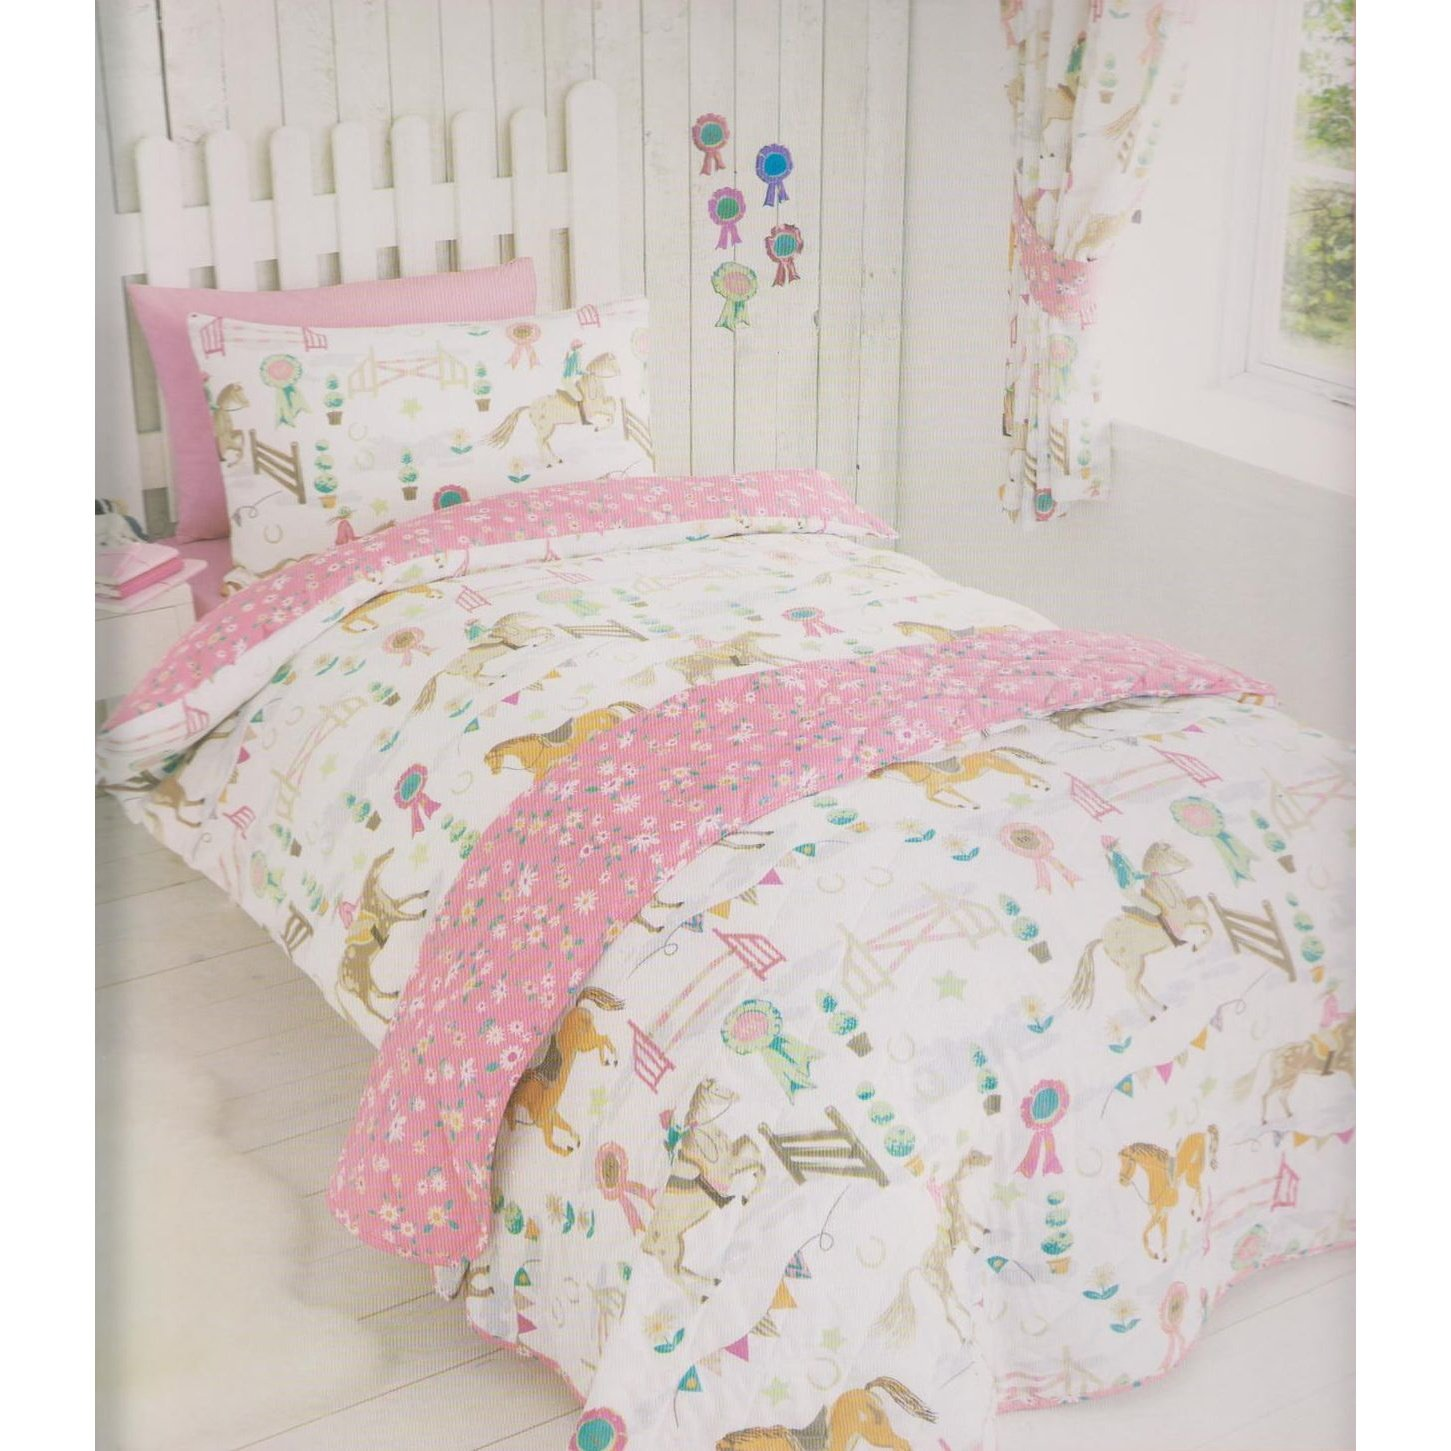 amazoncom horses animals girls quilt duvet cover pillowcase bedding bed set uk single us twin home kitchen - Horse Bedding